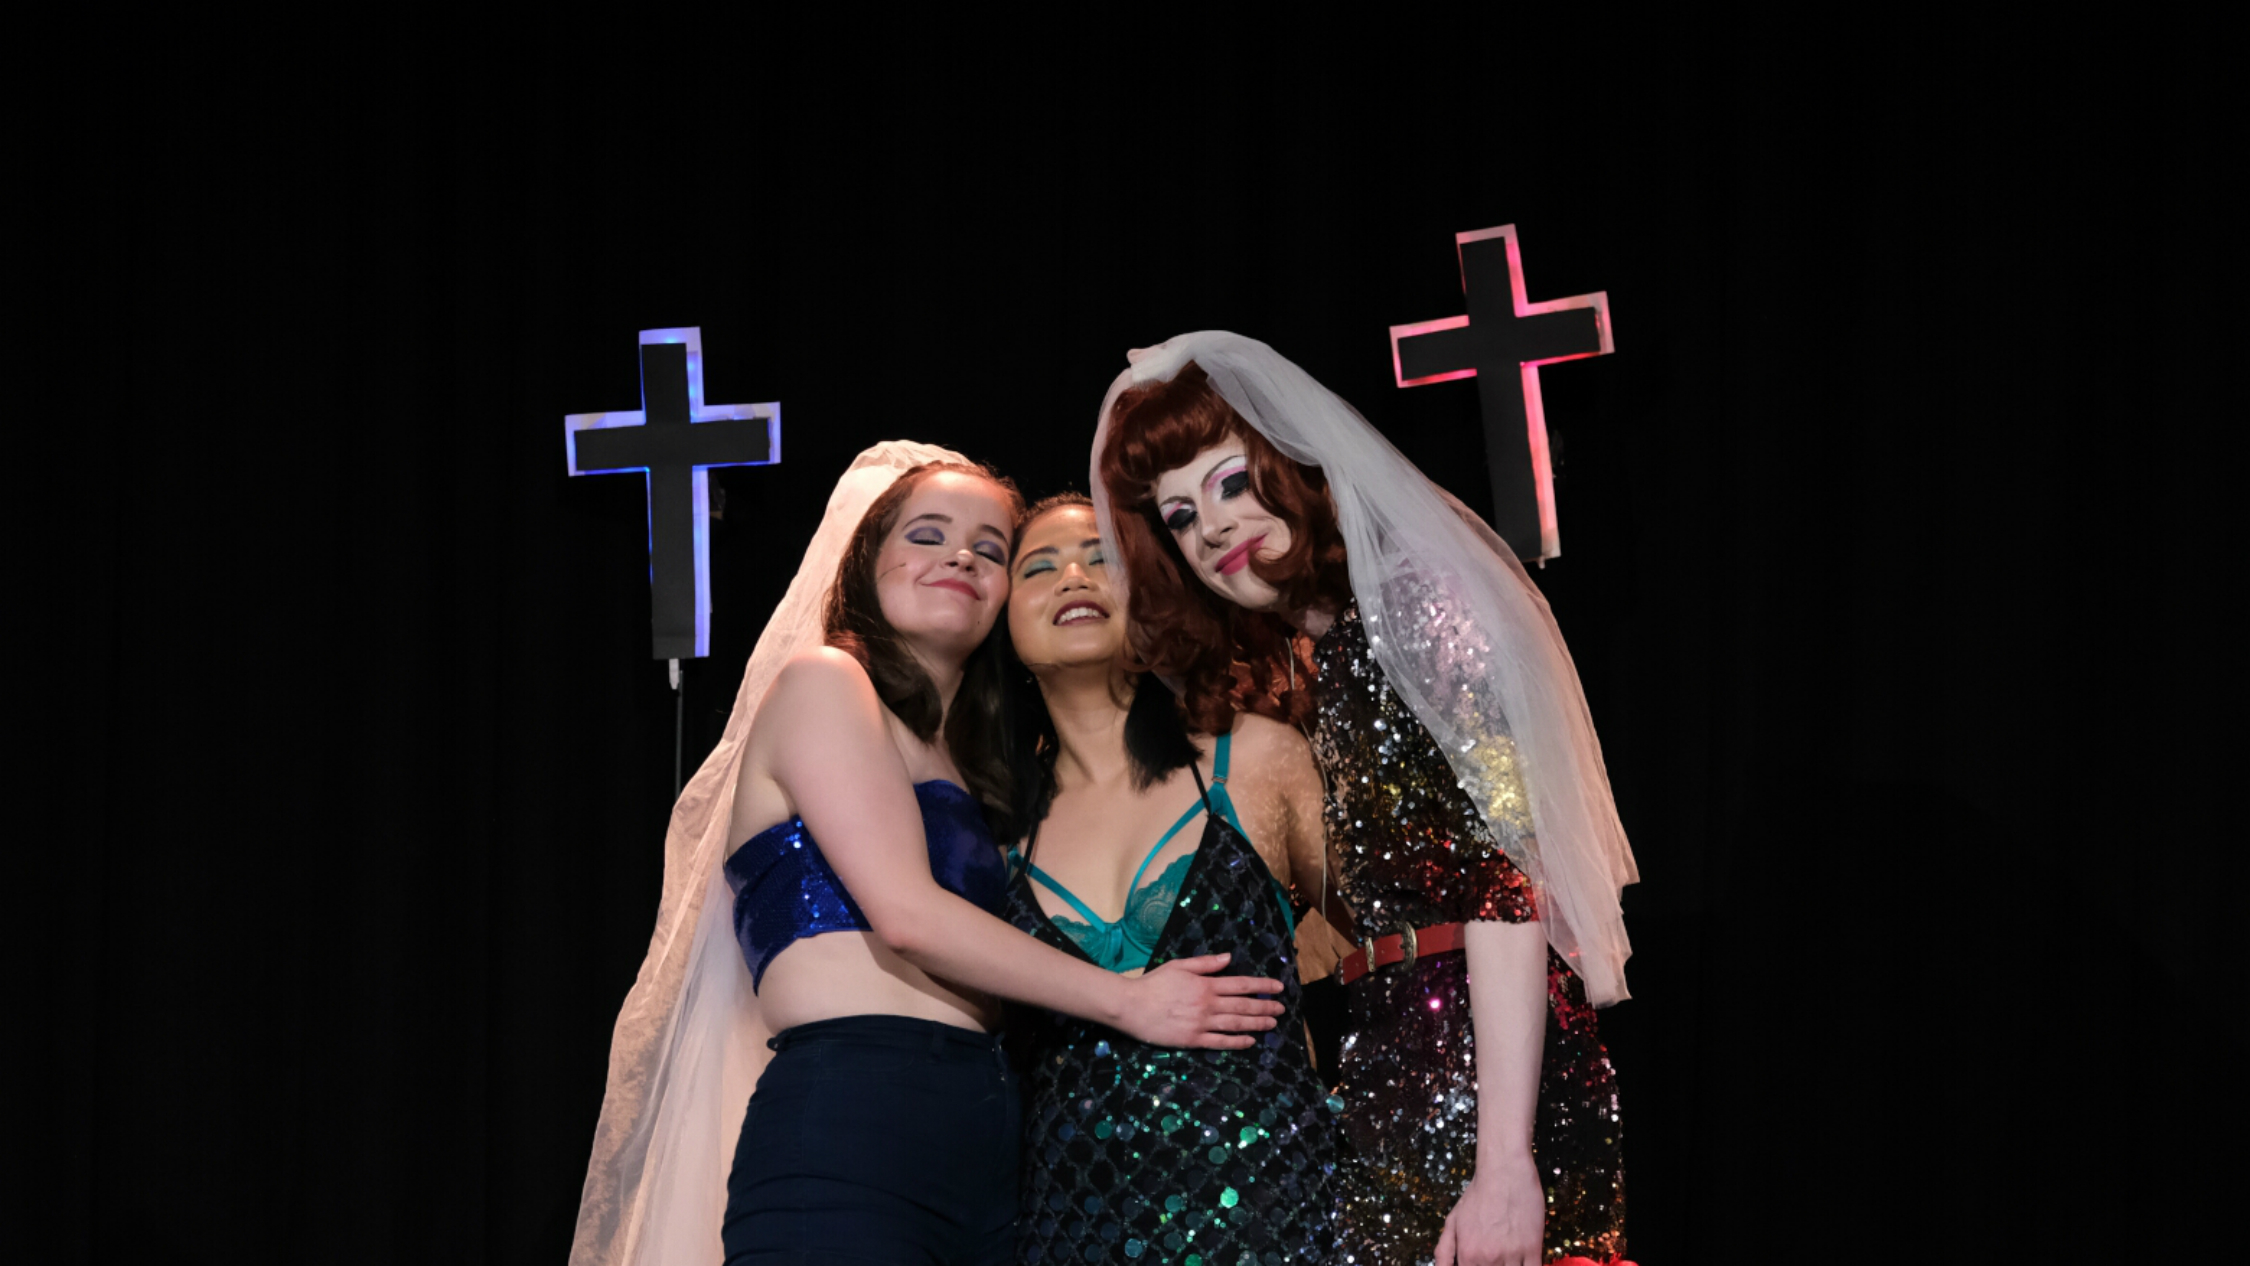 Polygamy, Polygayou Melbourne Fringe supplied image 2019